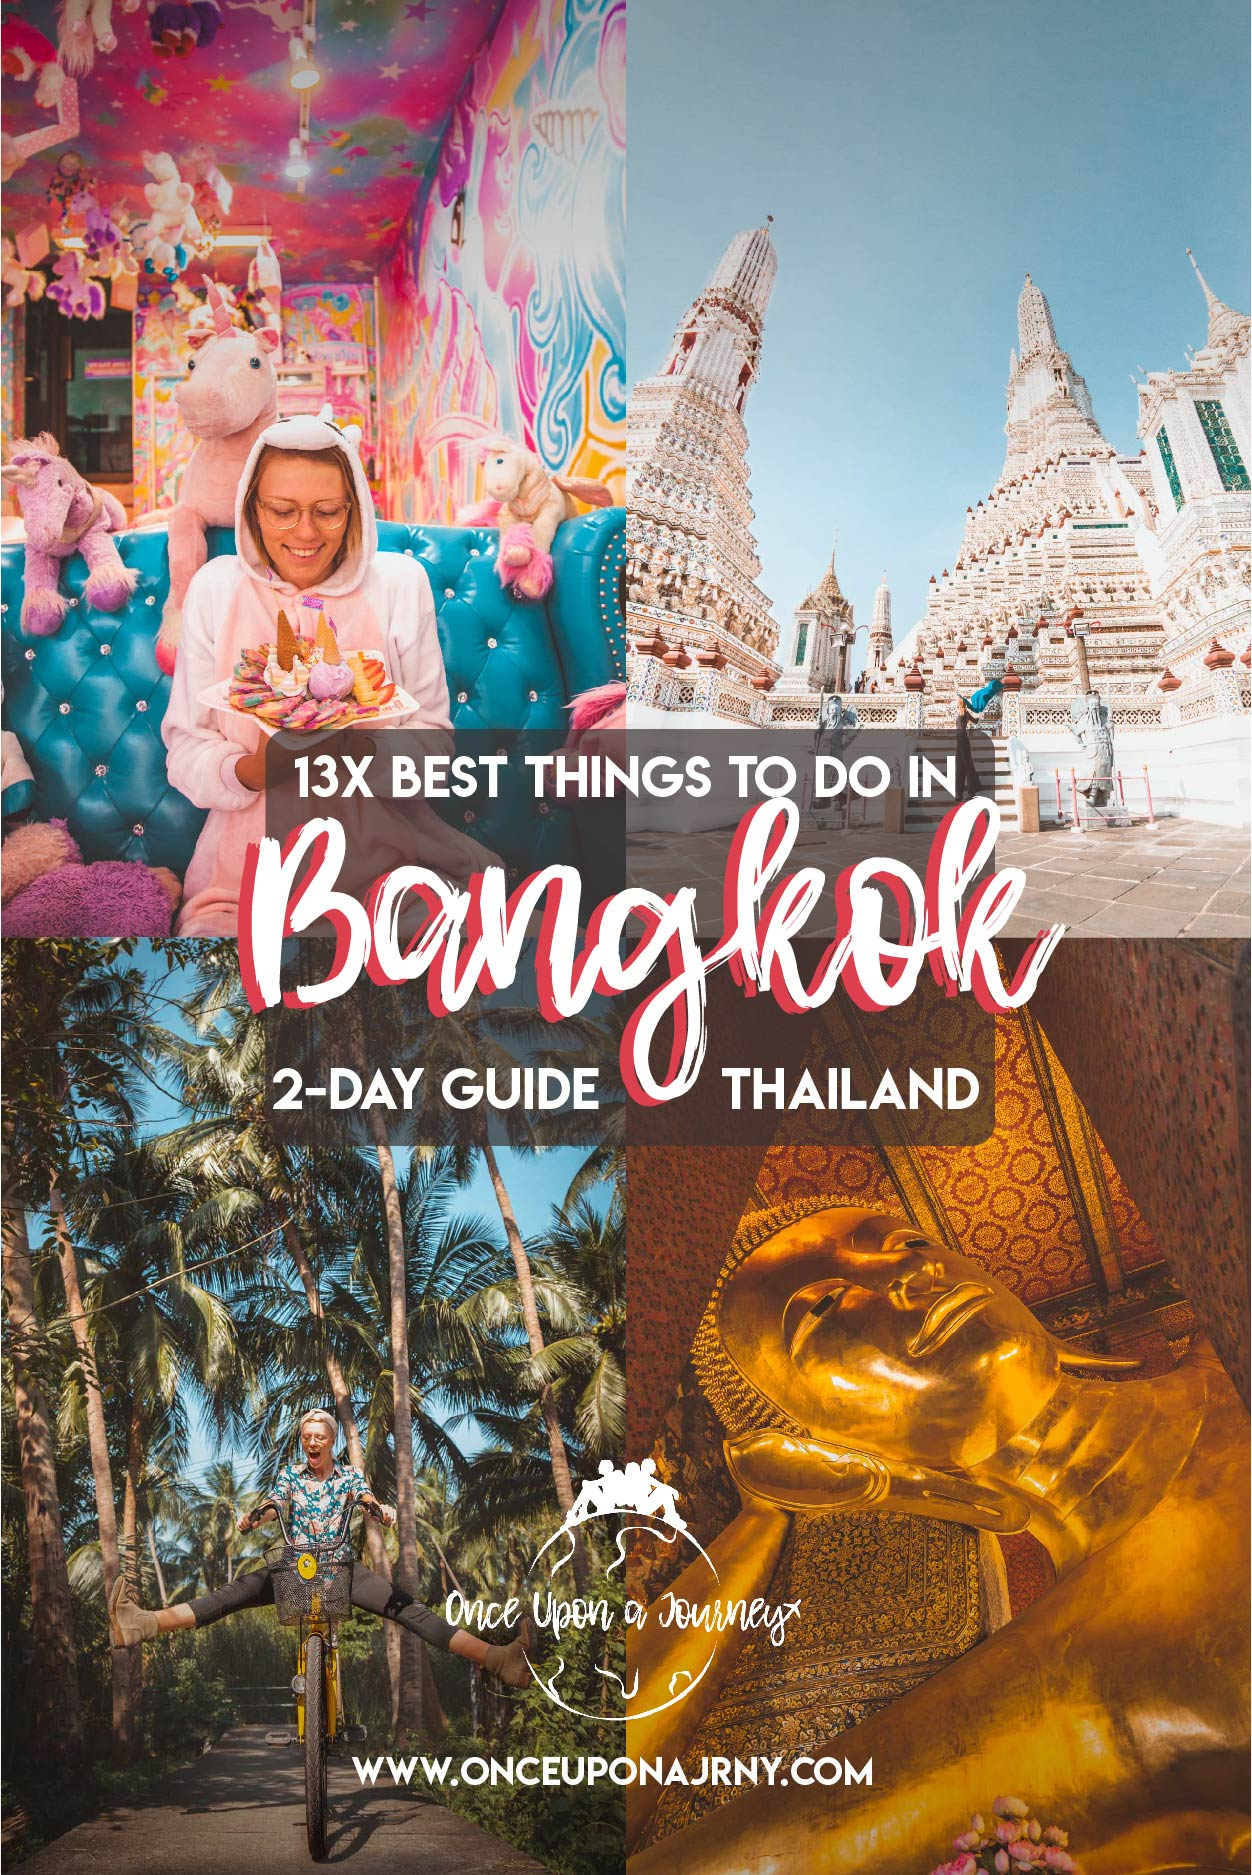 13x Best Things to do in Bangkok | 2-Day Guide Thailand | Once Upon A Journey LGBT Travel Blog #lesbiantravel #bangkok #thailand #bestthingstodo #travel